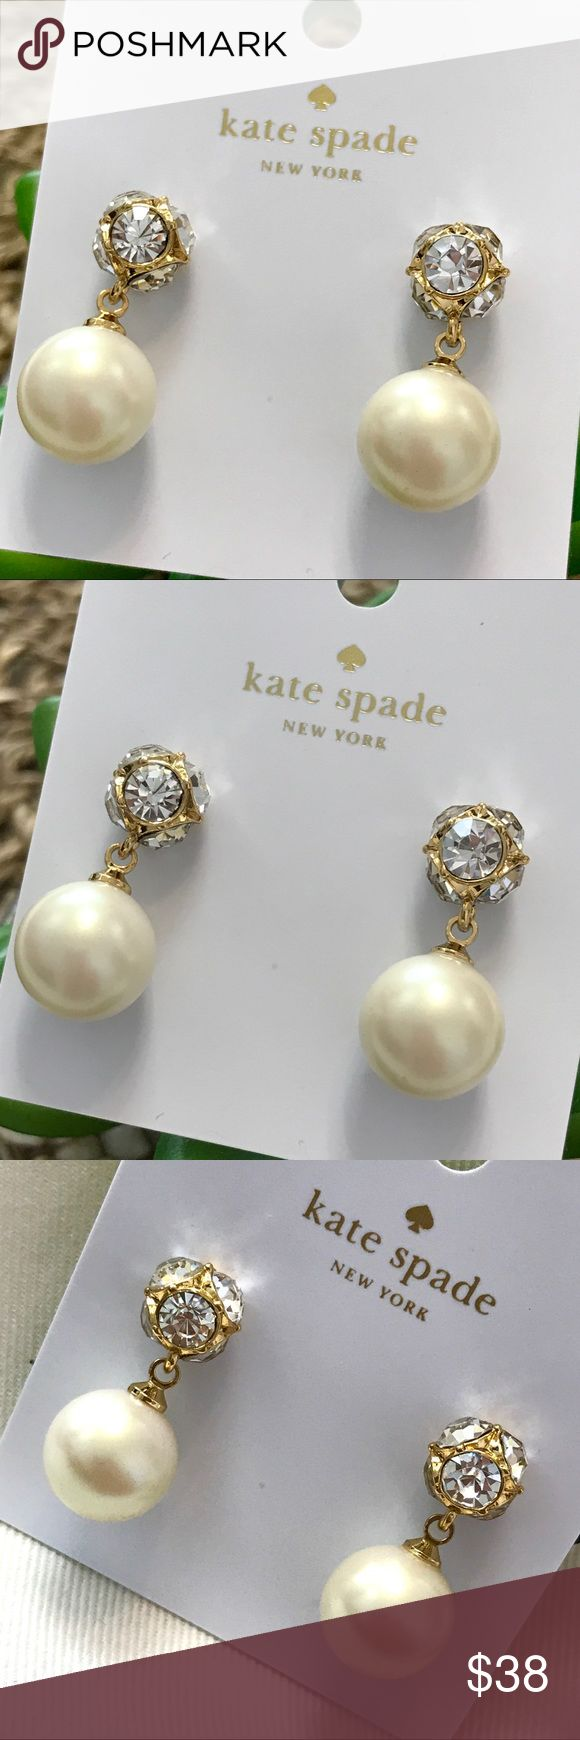 Kate Spade Pearl Drop Earrings NWT. Kate Spade New York Pearl Drop Marmalade Earrings.  simple, sparkling earrings in our shine on collection--made from crystals, glass stone, faux pearls and precious metals--allow you to do just that, every day (and night) of the week. 14k plated metal glass stone closure. Comes with the dust bag. No Trades. Price is Firm. Pls no low ball offers kate spade Jewelry Earrings